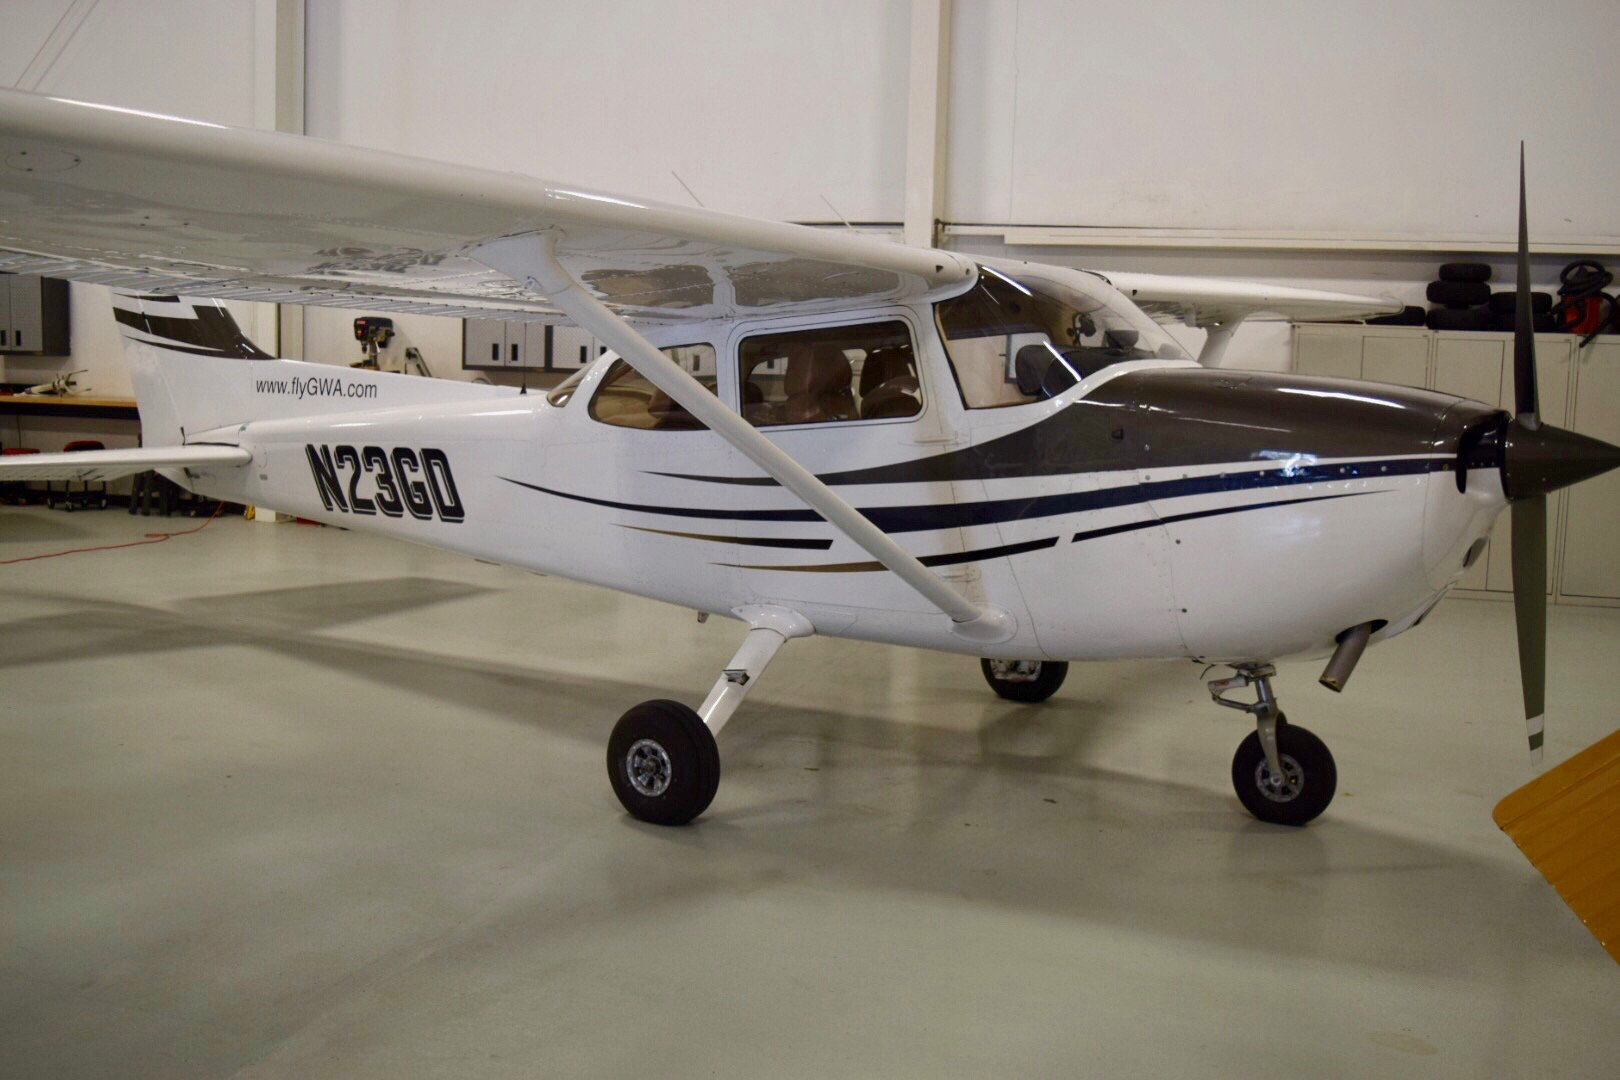 Land Lover? - Our Cessna 172s offer a great training platform to earn your wings. Come try one on for size!